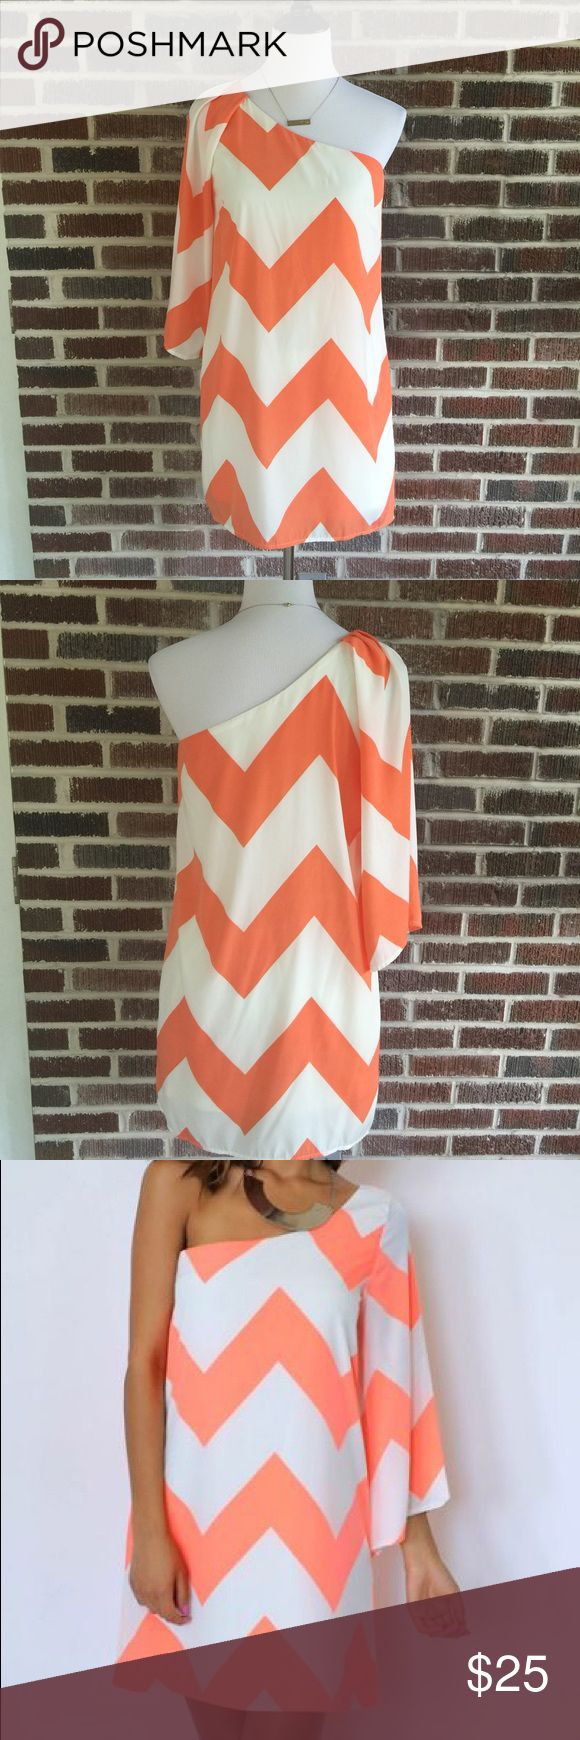 "Pink Owl One Shoulder Coral Chevron Print Dress Adorable One shoulder Chevron print dress by pink owl.  Color is classified as a neon coral, but it doesn't seem too bright.  It's really cute just throw on accessorize and go.  A cute Wedge would be perfect with this dress.  One sleeve is a 3/4 length sleeve.  There is a small flaw as shown in last picture but other than that it's in very good condition.  Length measures 33"". Pink Owl Dresses One Shoulder"